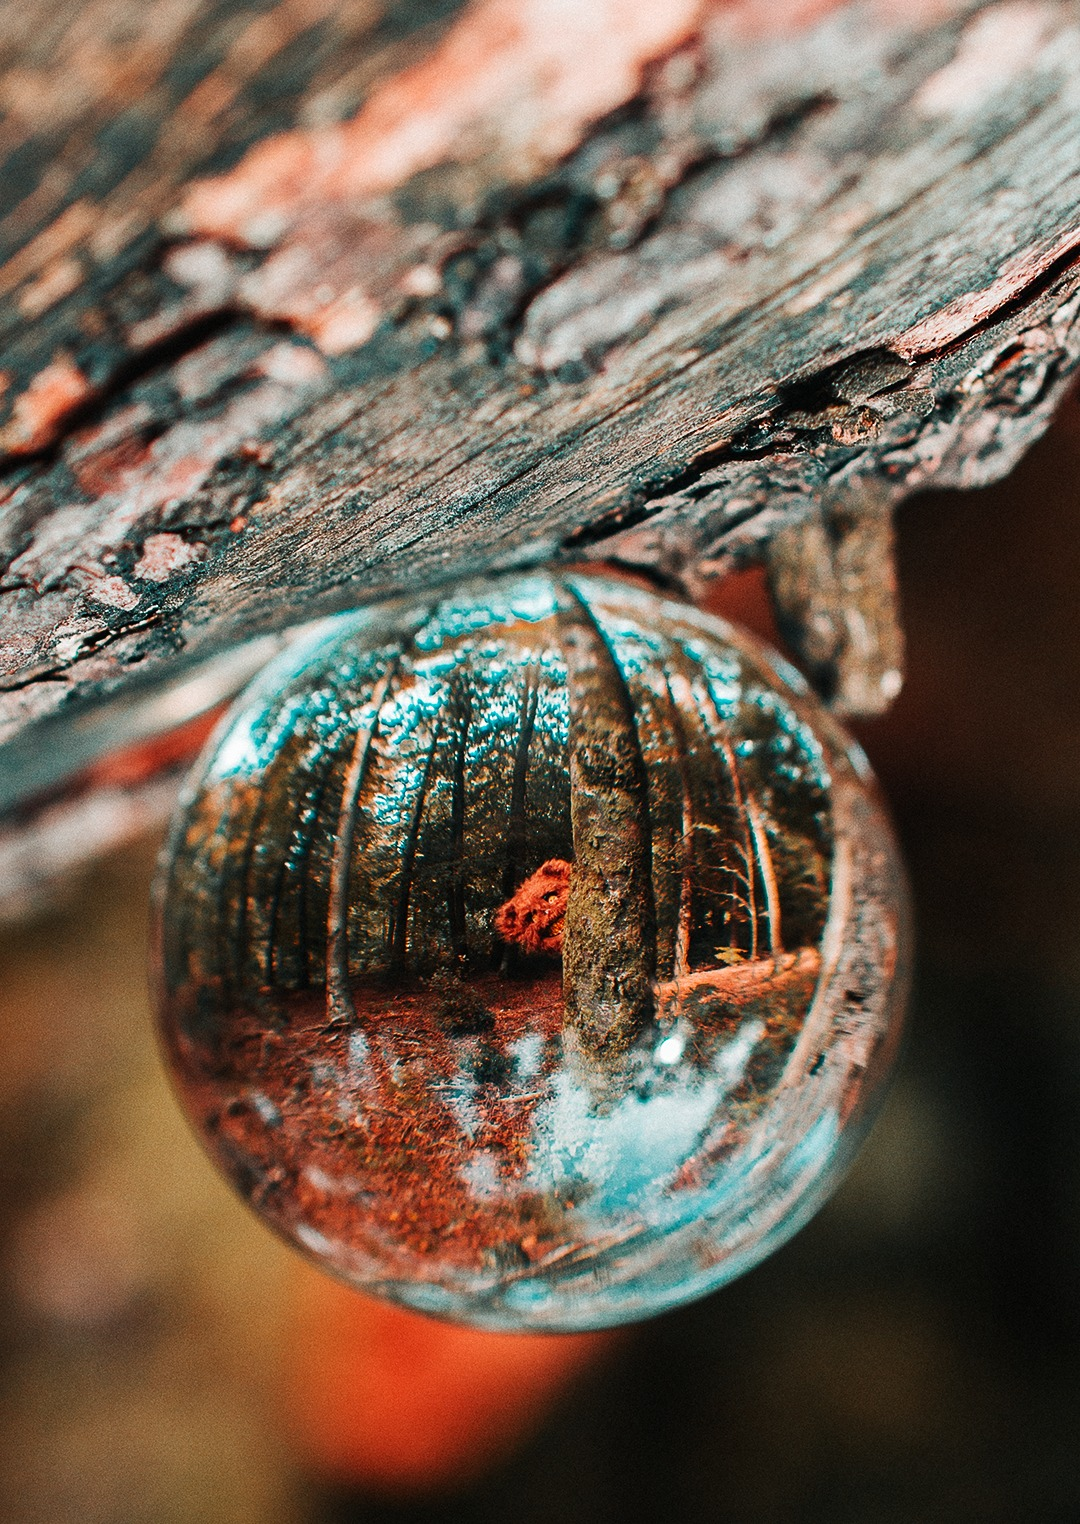 spooky photography lensball forest